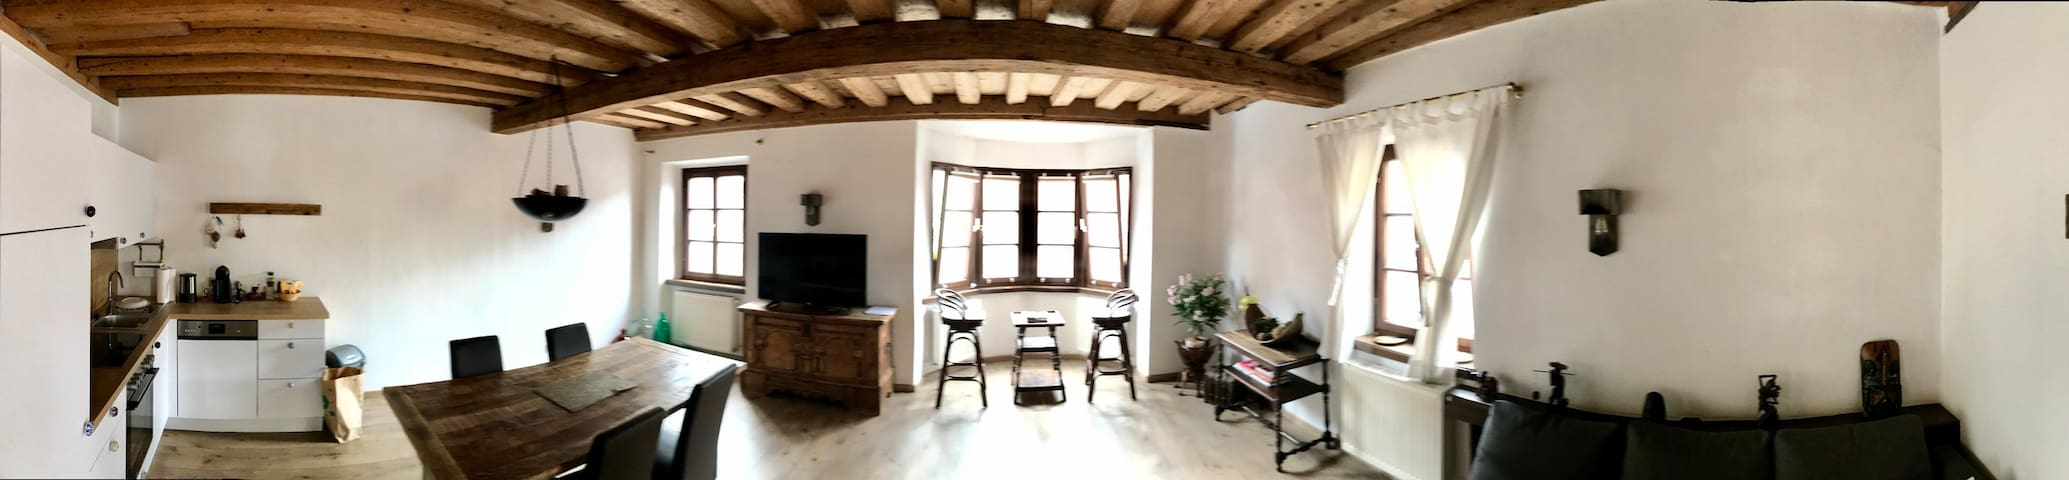 60 Square meter Apartment - Close to Old Town